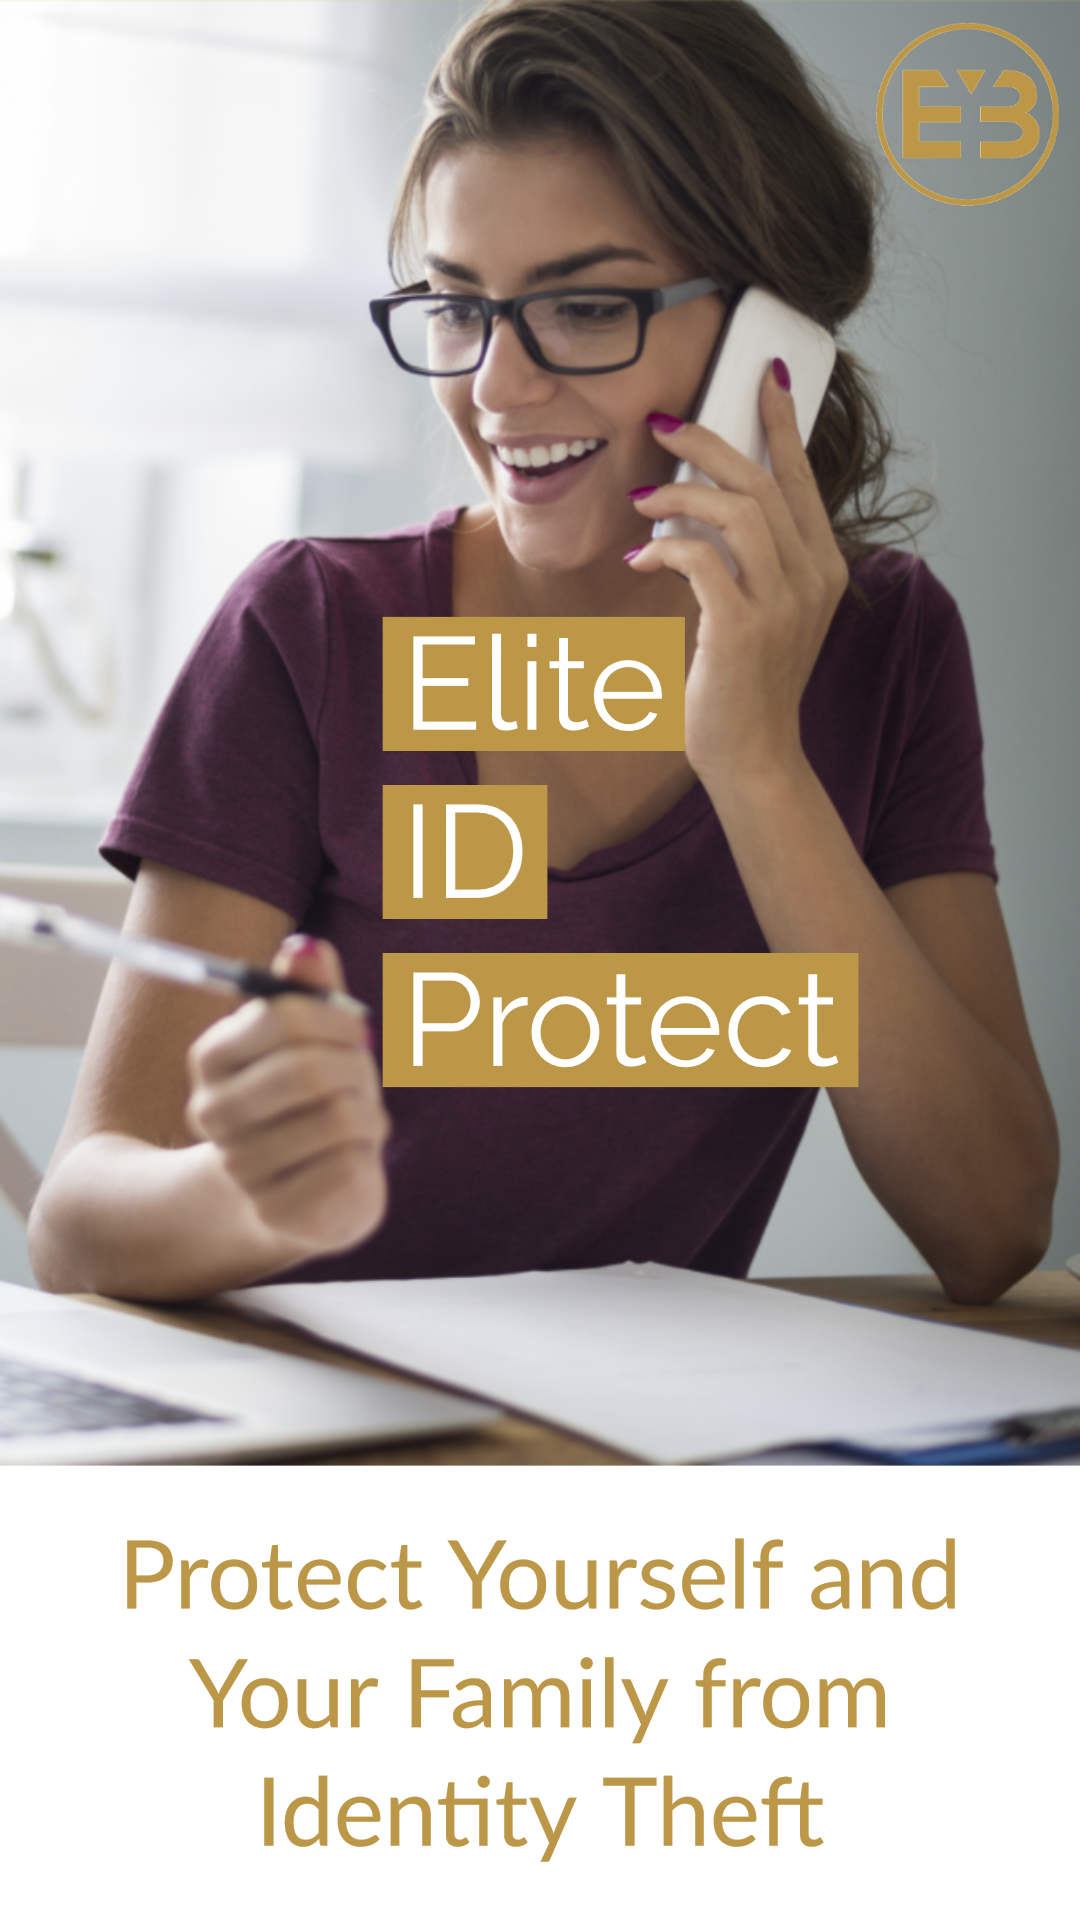 ELITE ID PROTECT detects the costly crimes of Identity